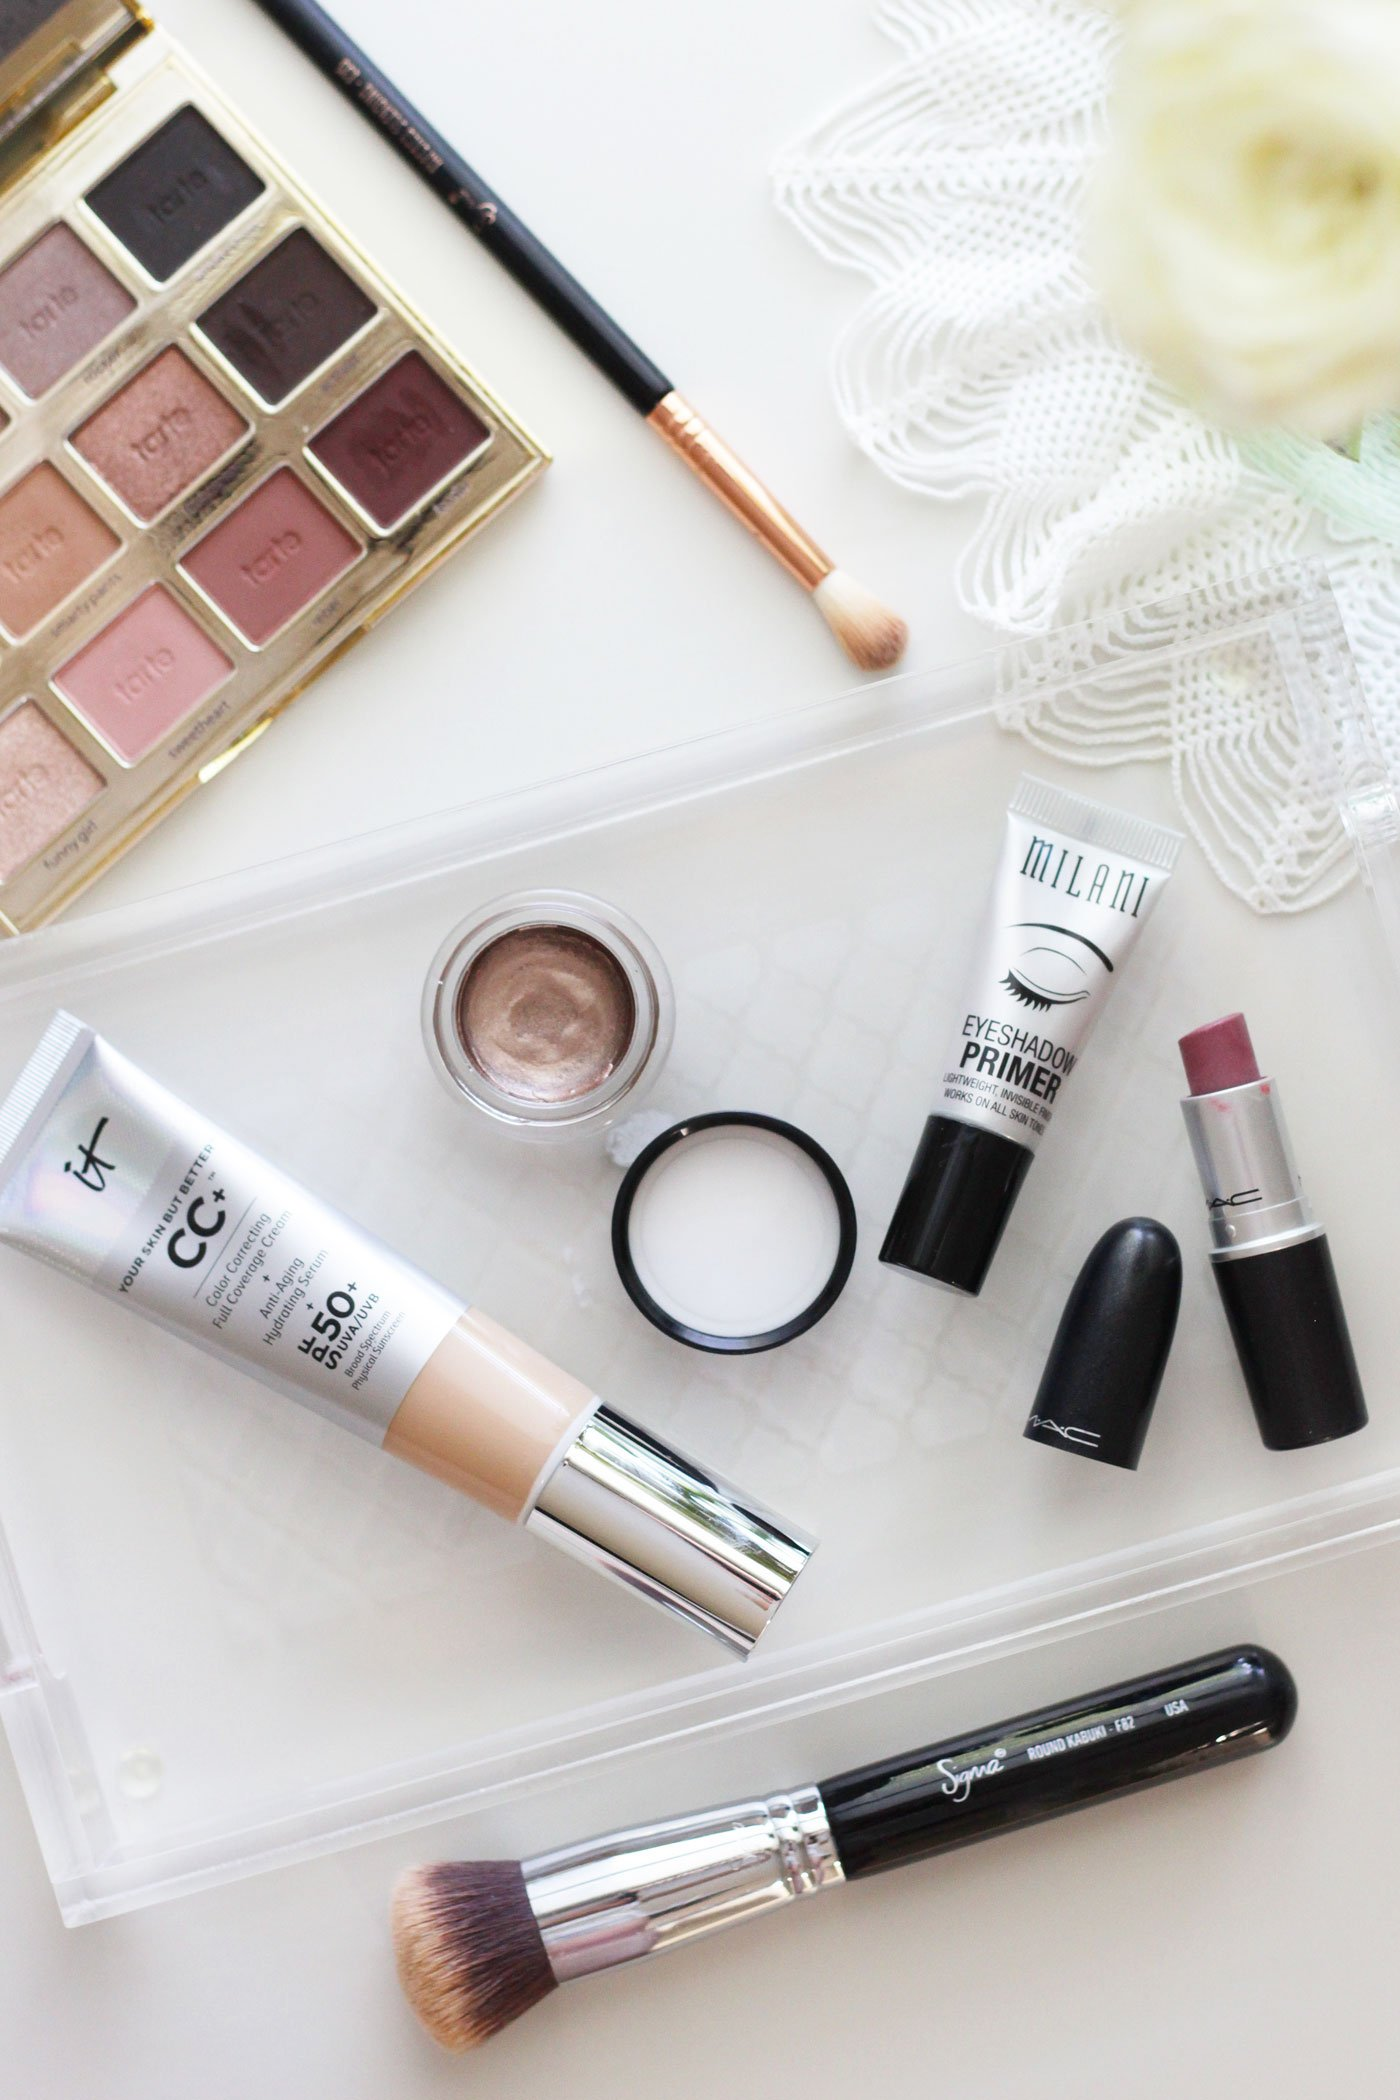 New and Rediscovered Products in My Summer Makeup Bag